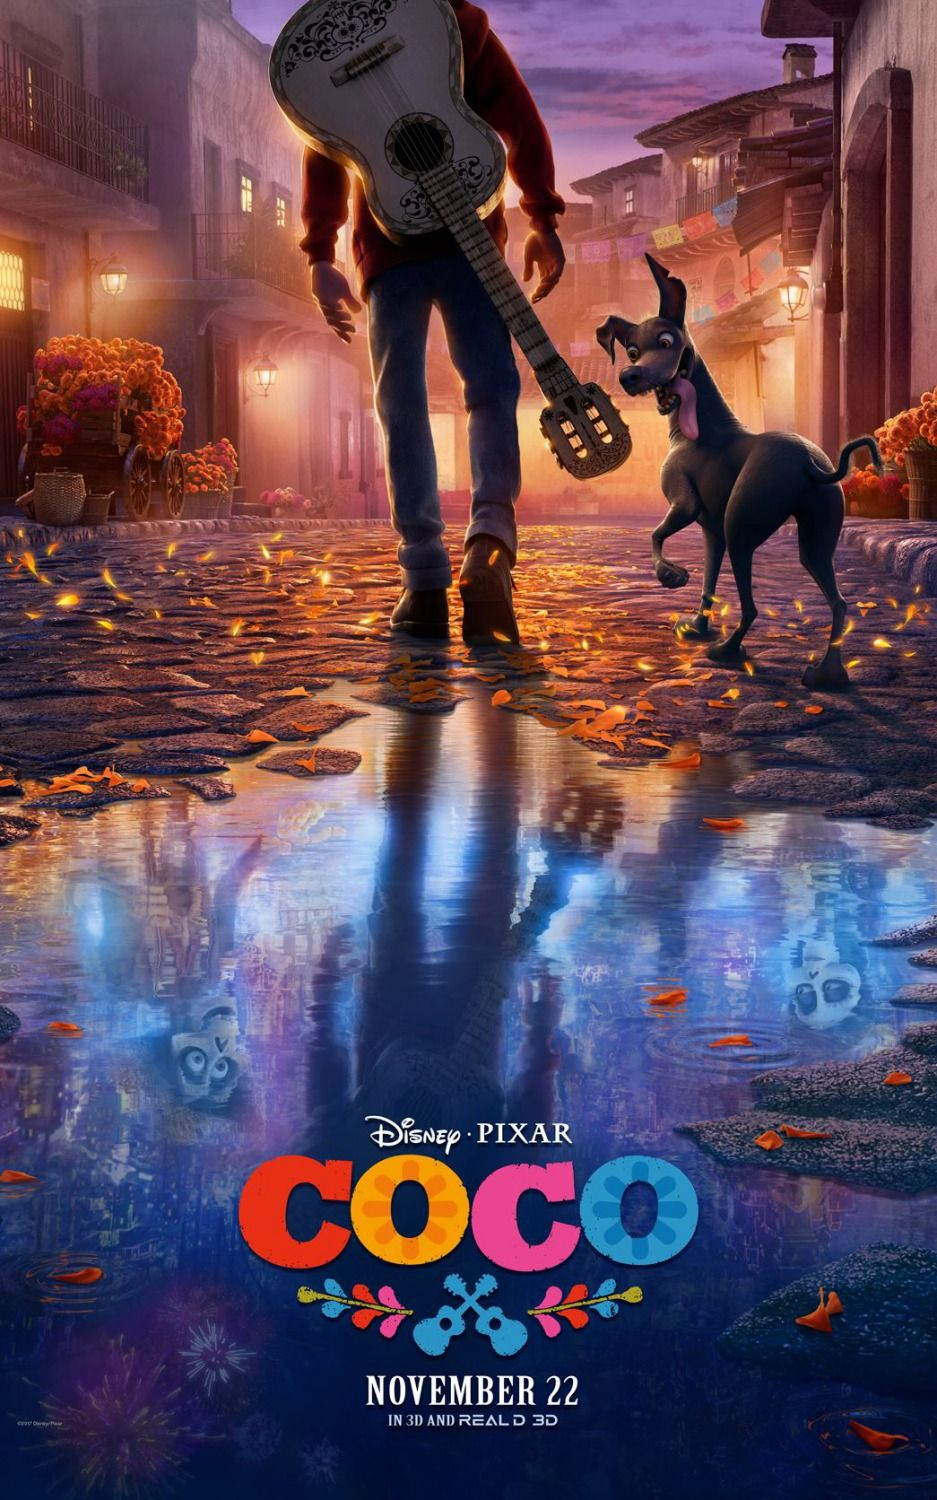 Coco 2017 Diseno Ten30 Studios Http Ten30studios Com Animated Movies Pixar Movies Free Movies Online See what coco_2 (coco_2) has discovered on pinterest, the world's biggest collection of ideas. movies pixar movies